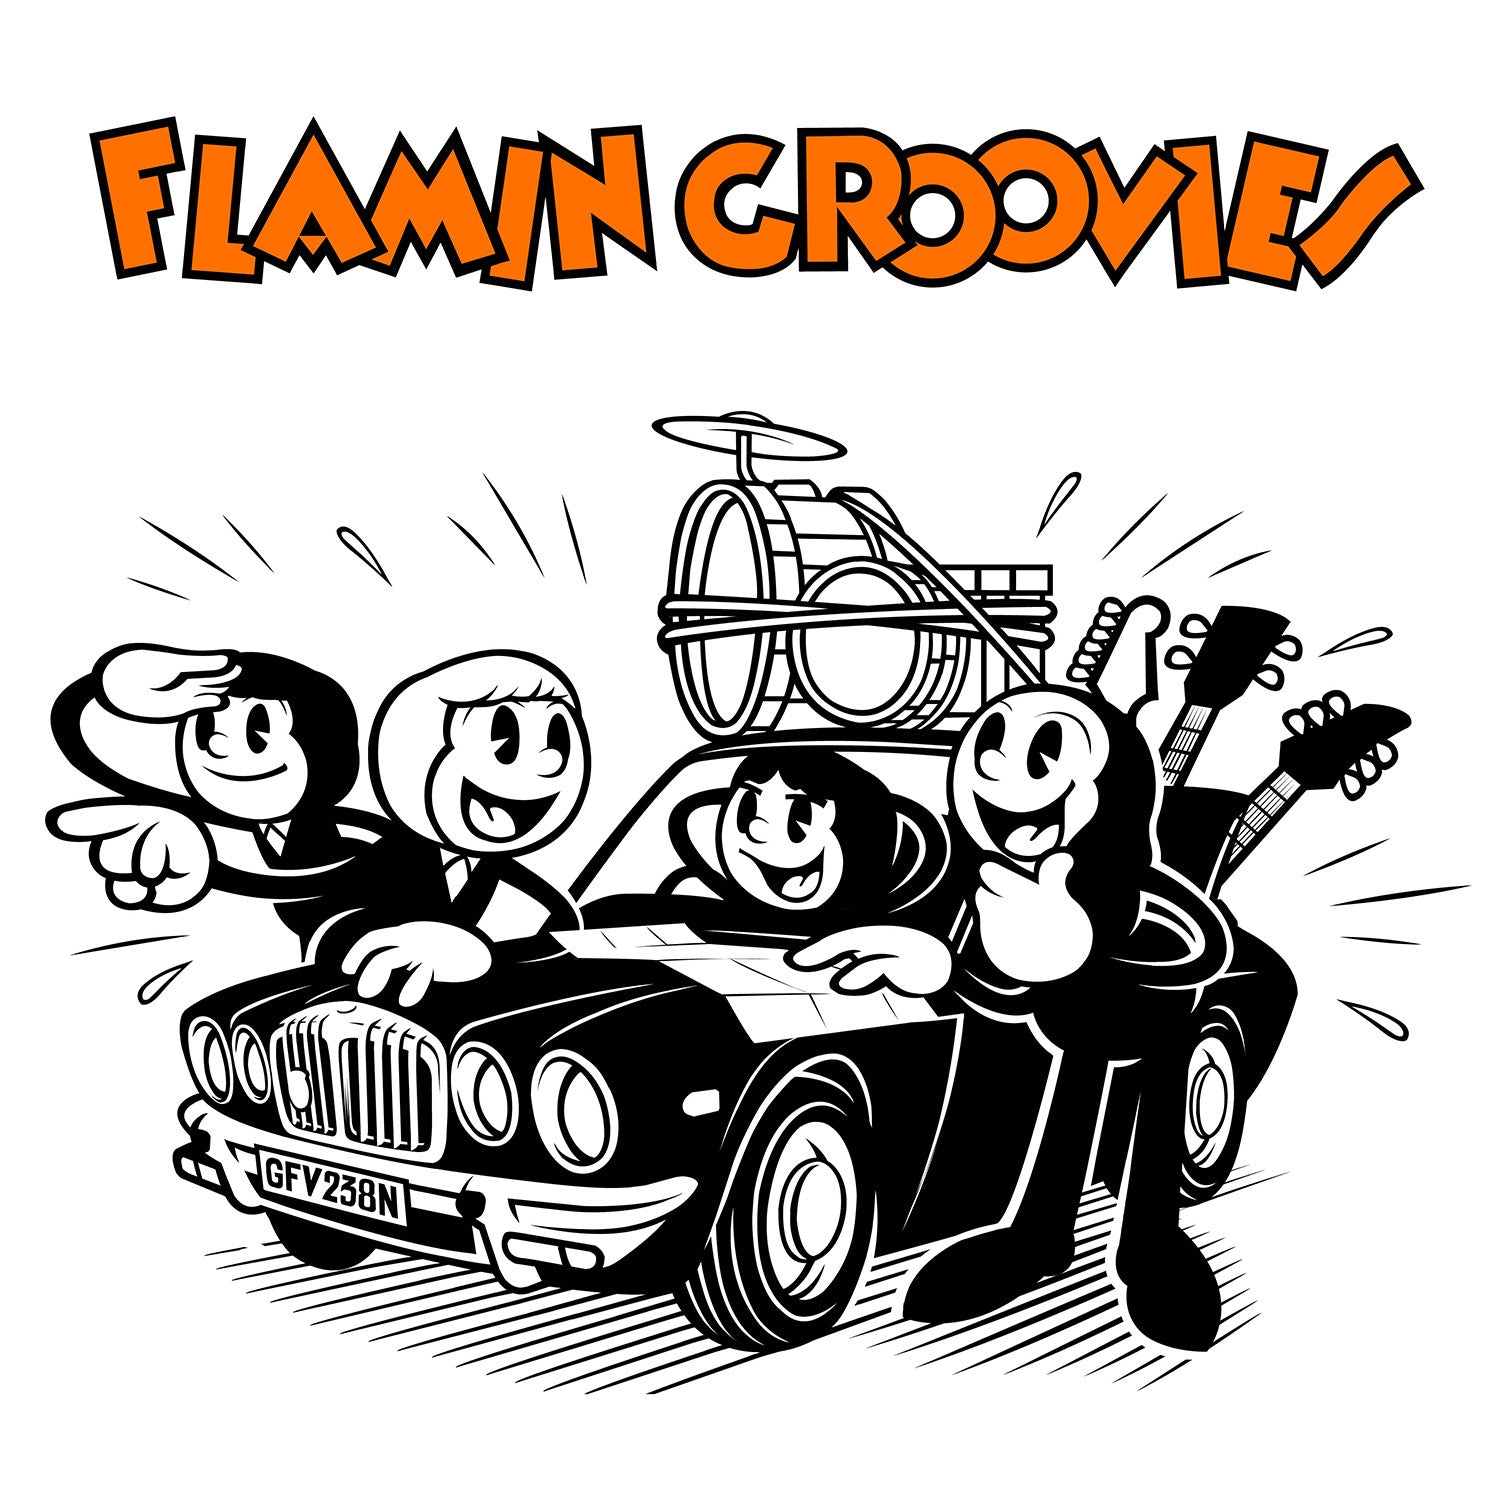 Flamin' Groovies, The - Crazy Macy b/w Let Me Rock 7""